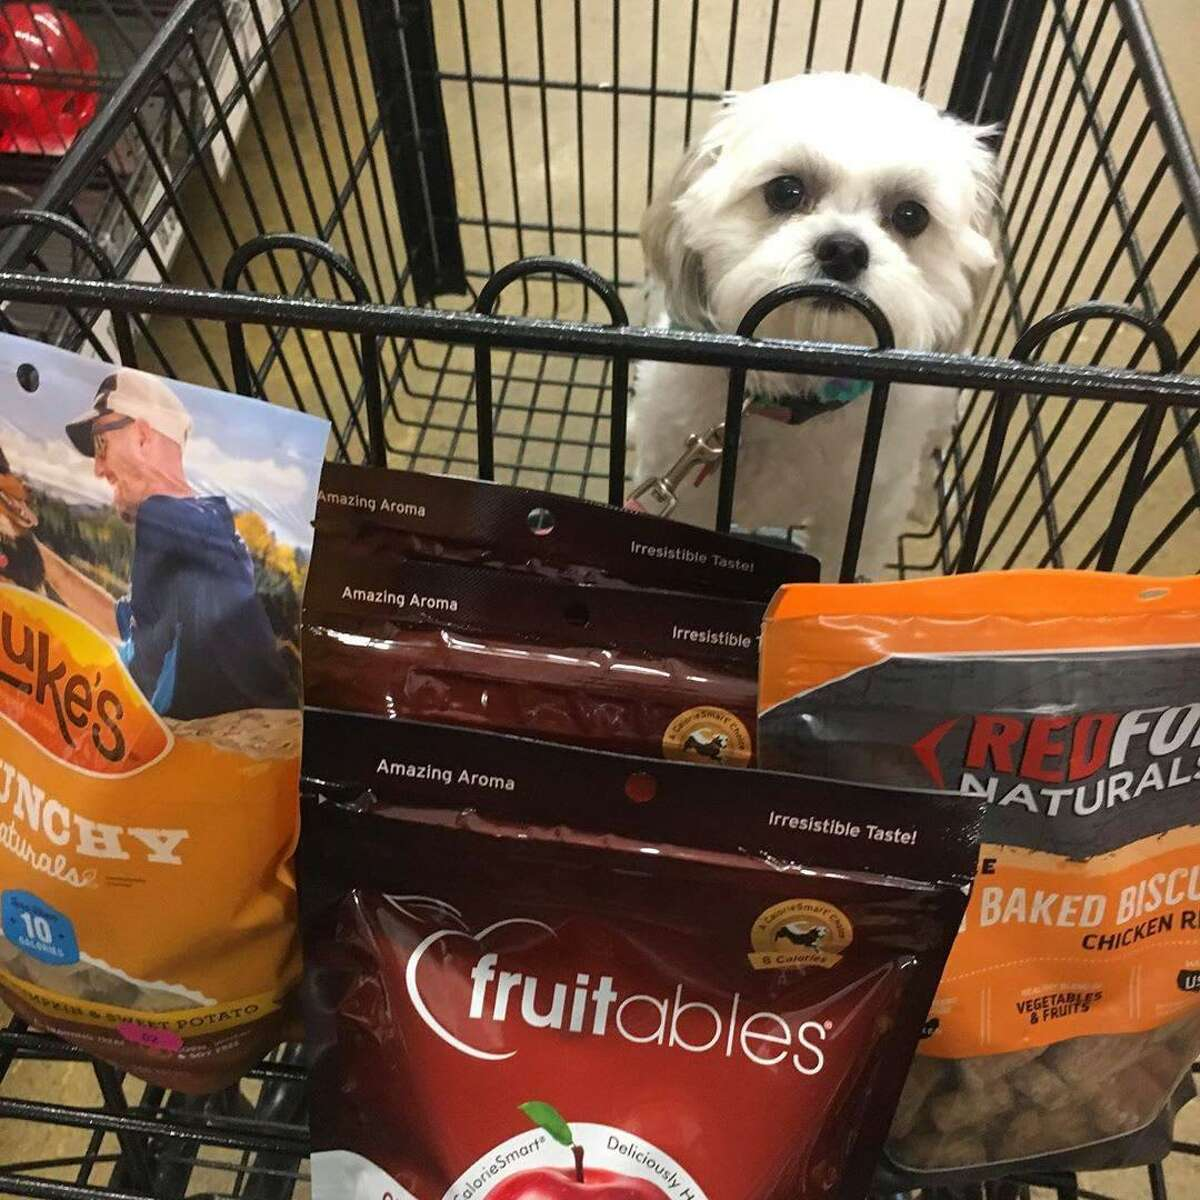 The new Pet Supplies Plus store in Friendswood carries major brands in food, toys, beds, leashes, bowls, aquariums, natural and organic food options. It also offers grooming services.